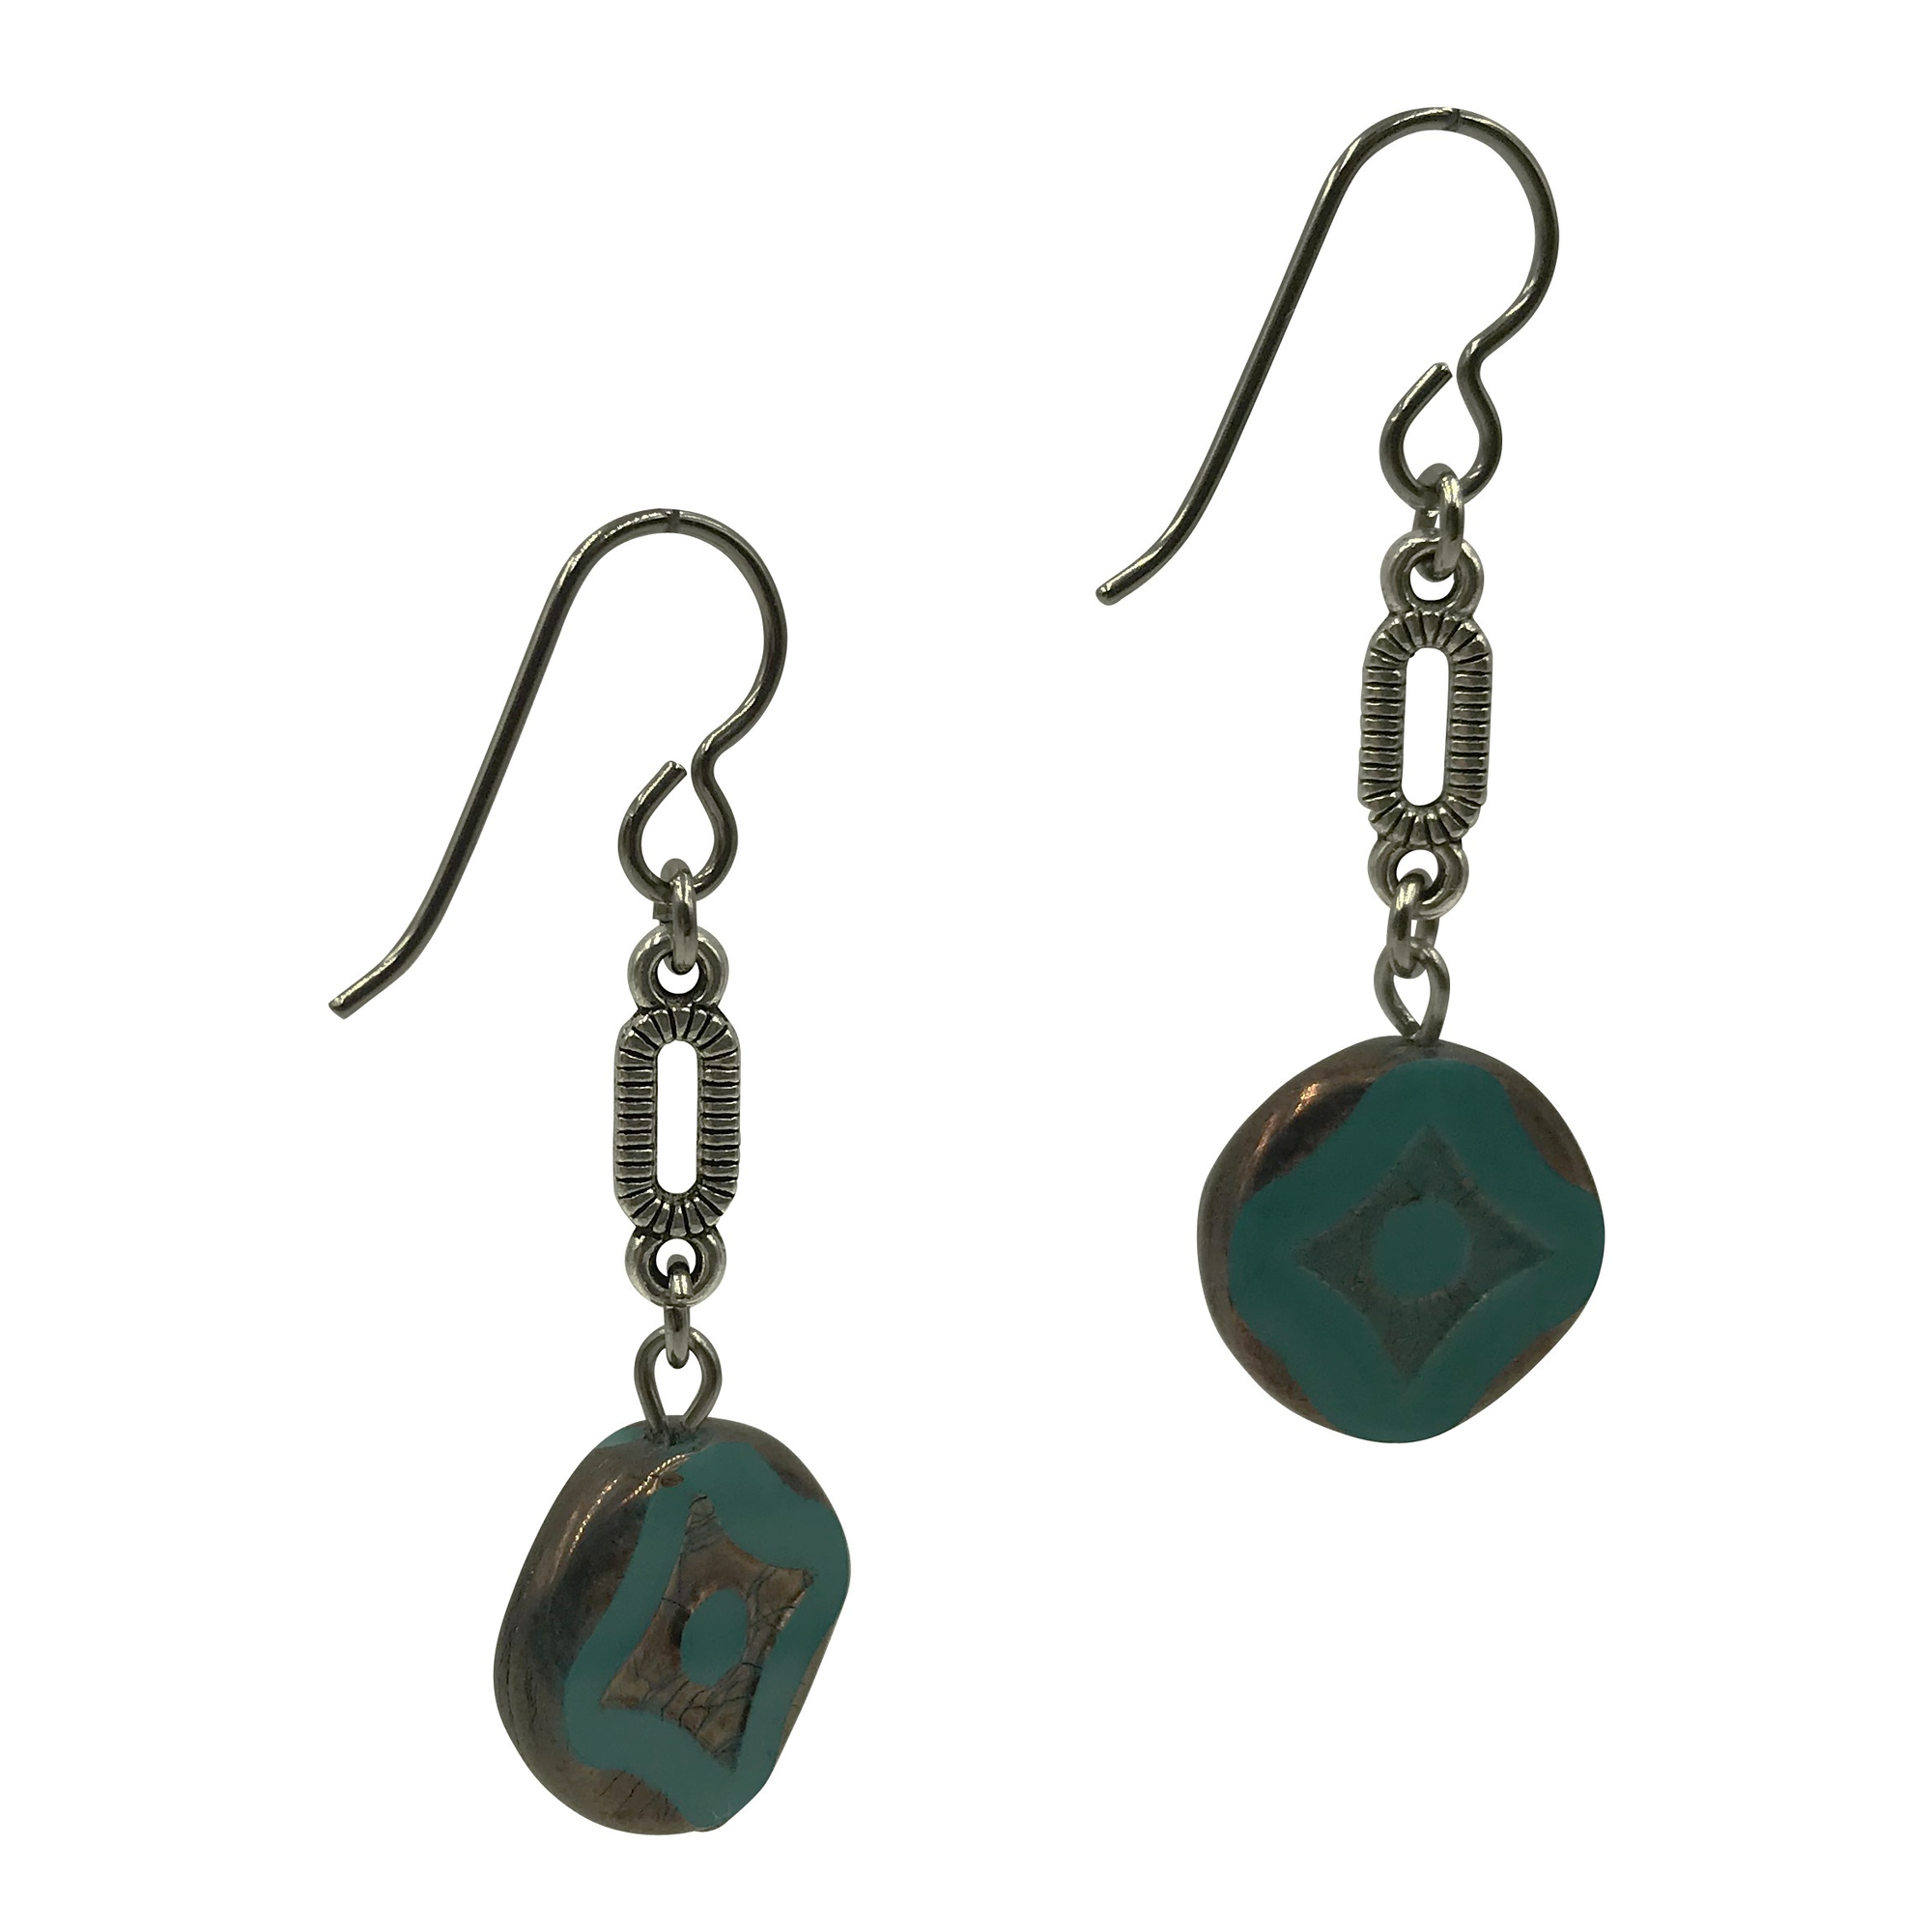 Teal Dangle Earrings for Sensitive Ears-Earrings- Creative Jewelry by Marcia